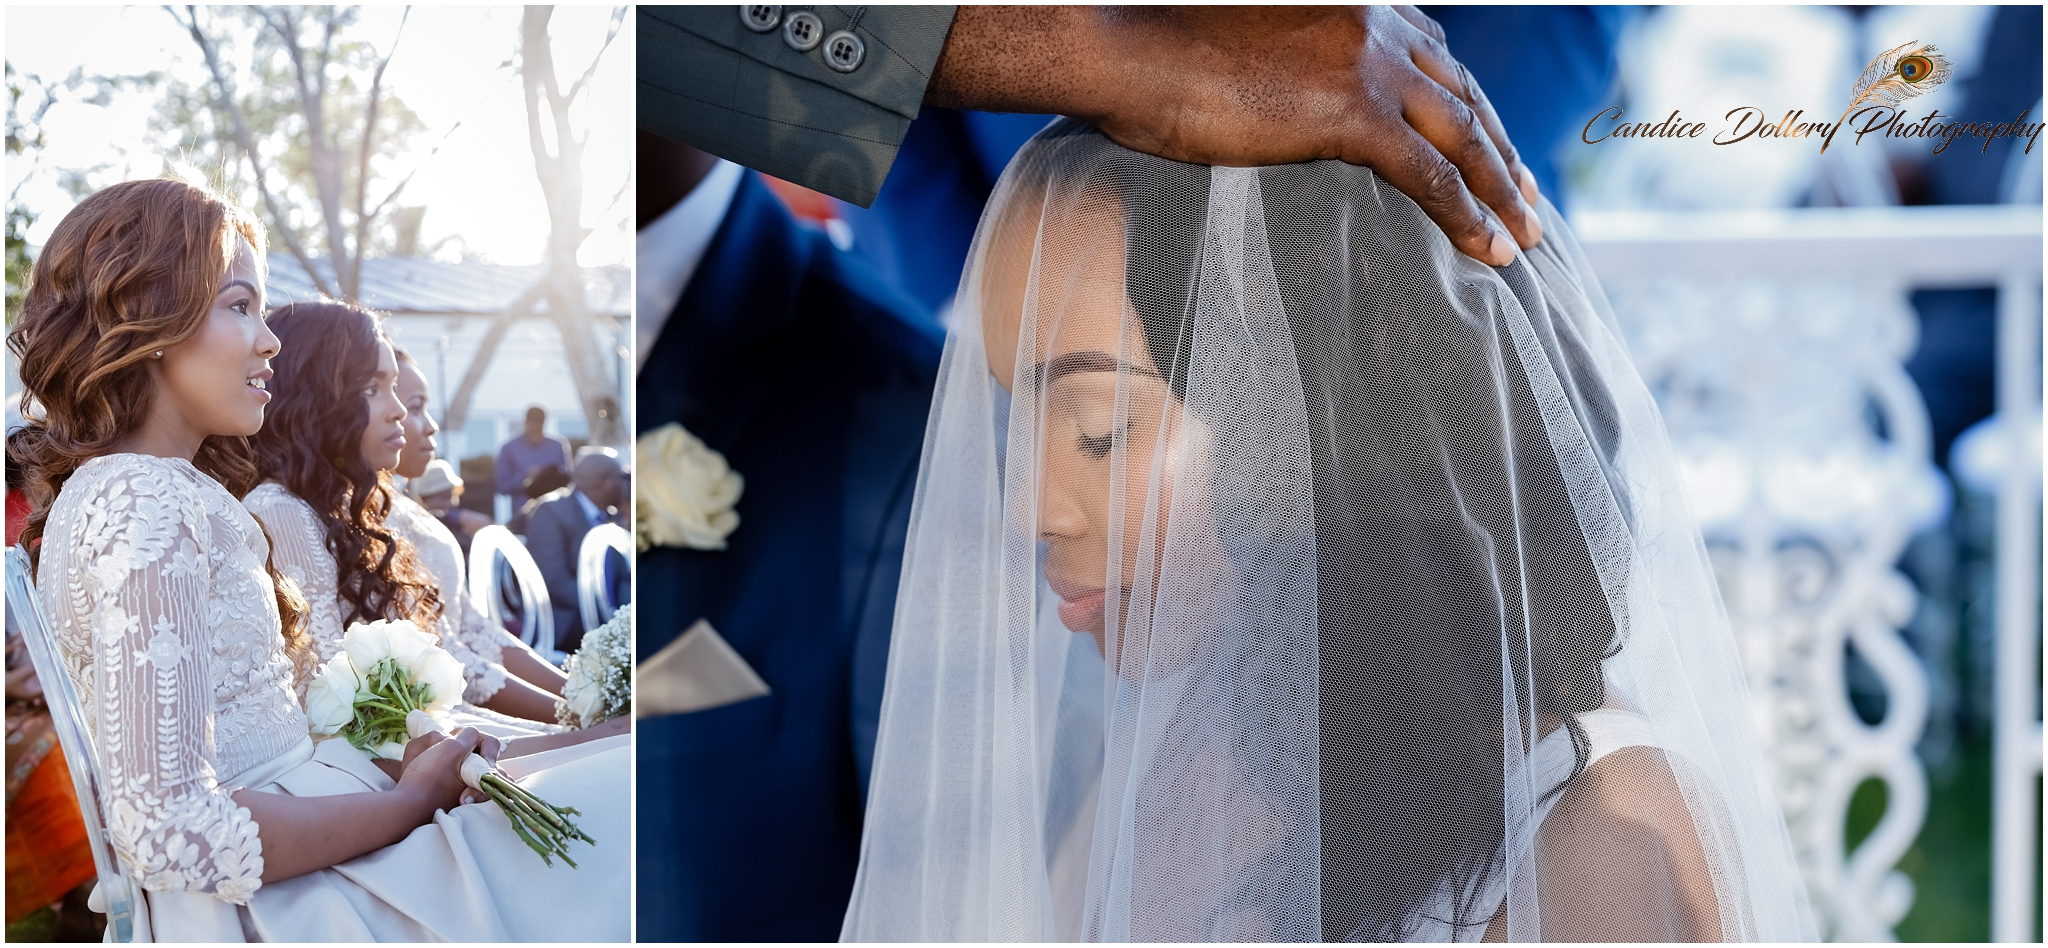 lelethu-kgotsos-wedding-candice-dollery-photography_1625